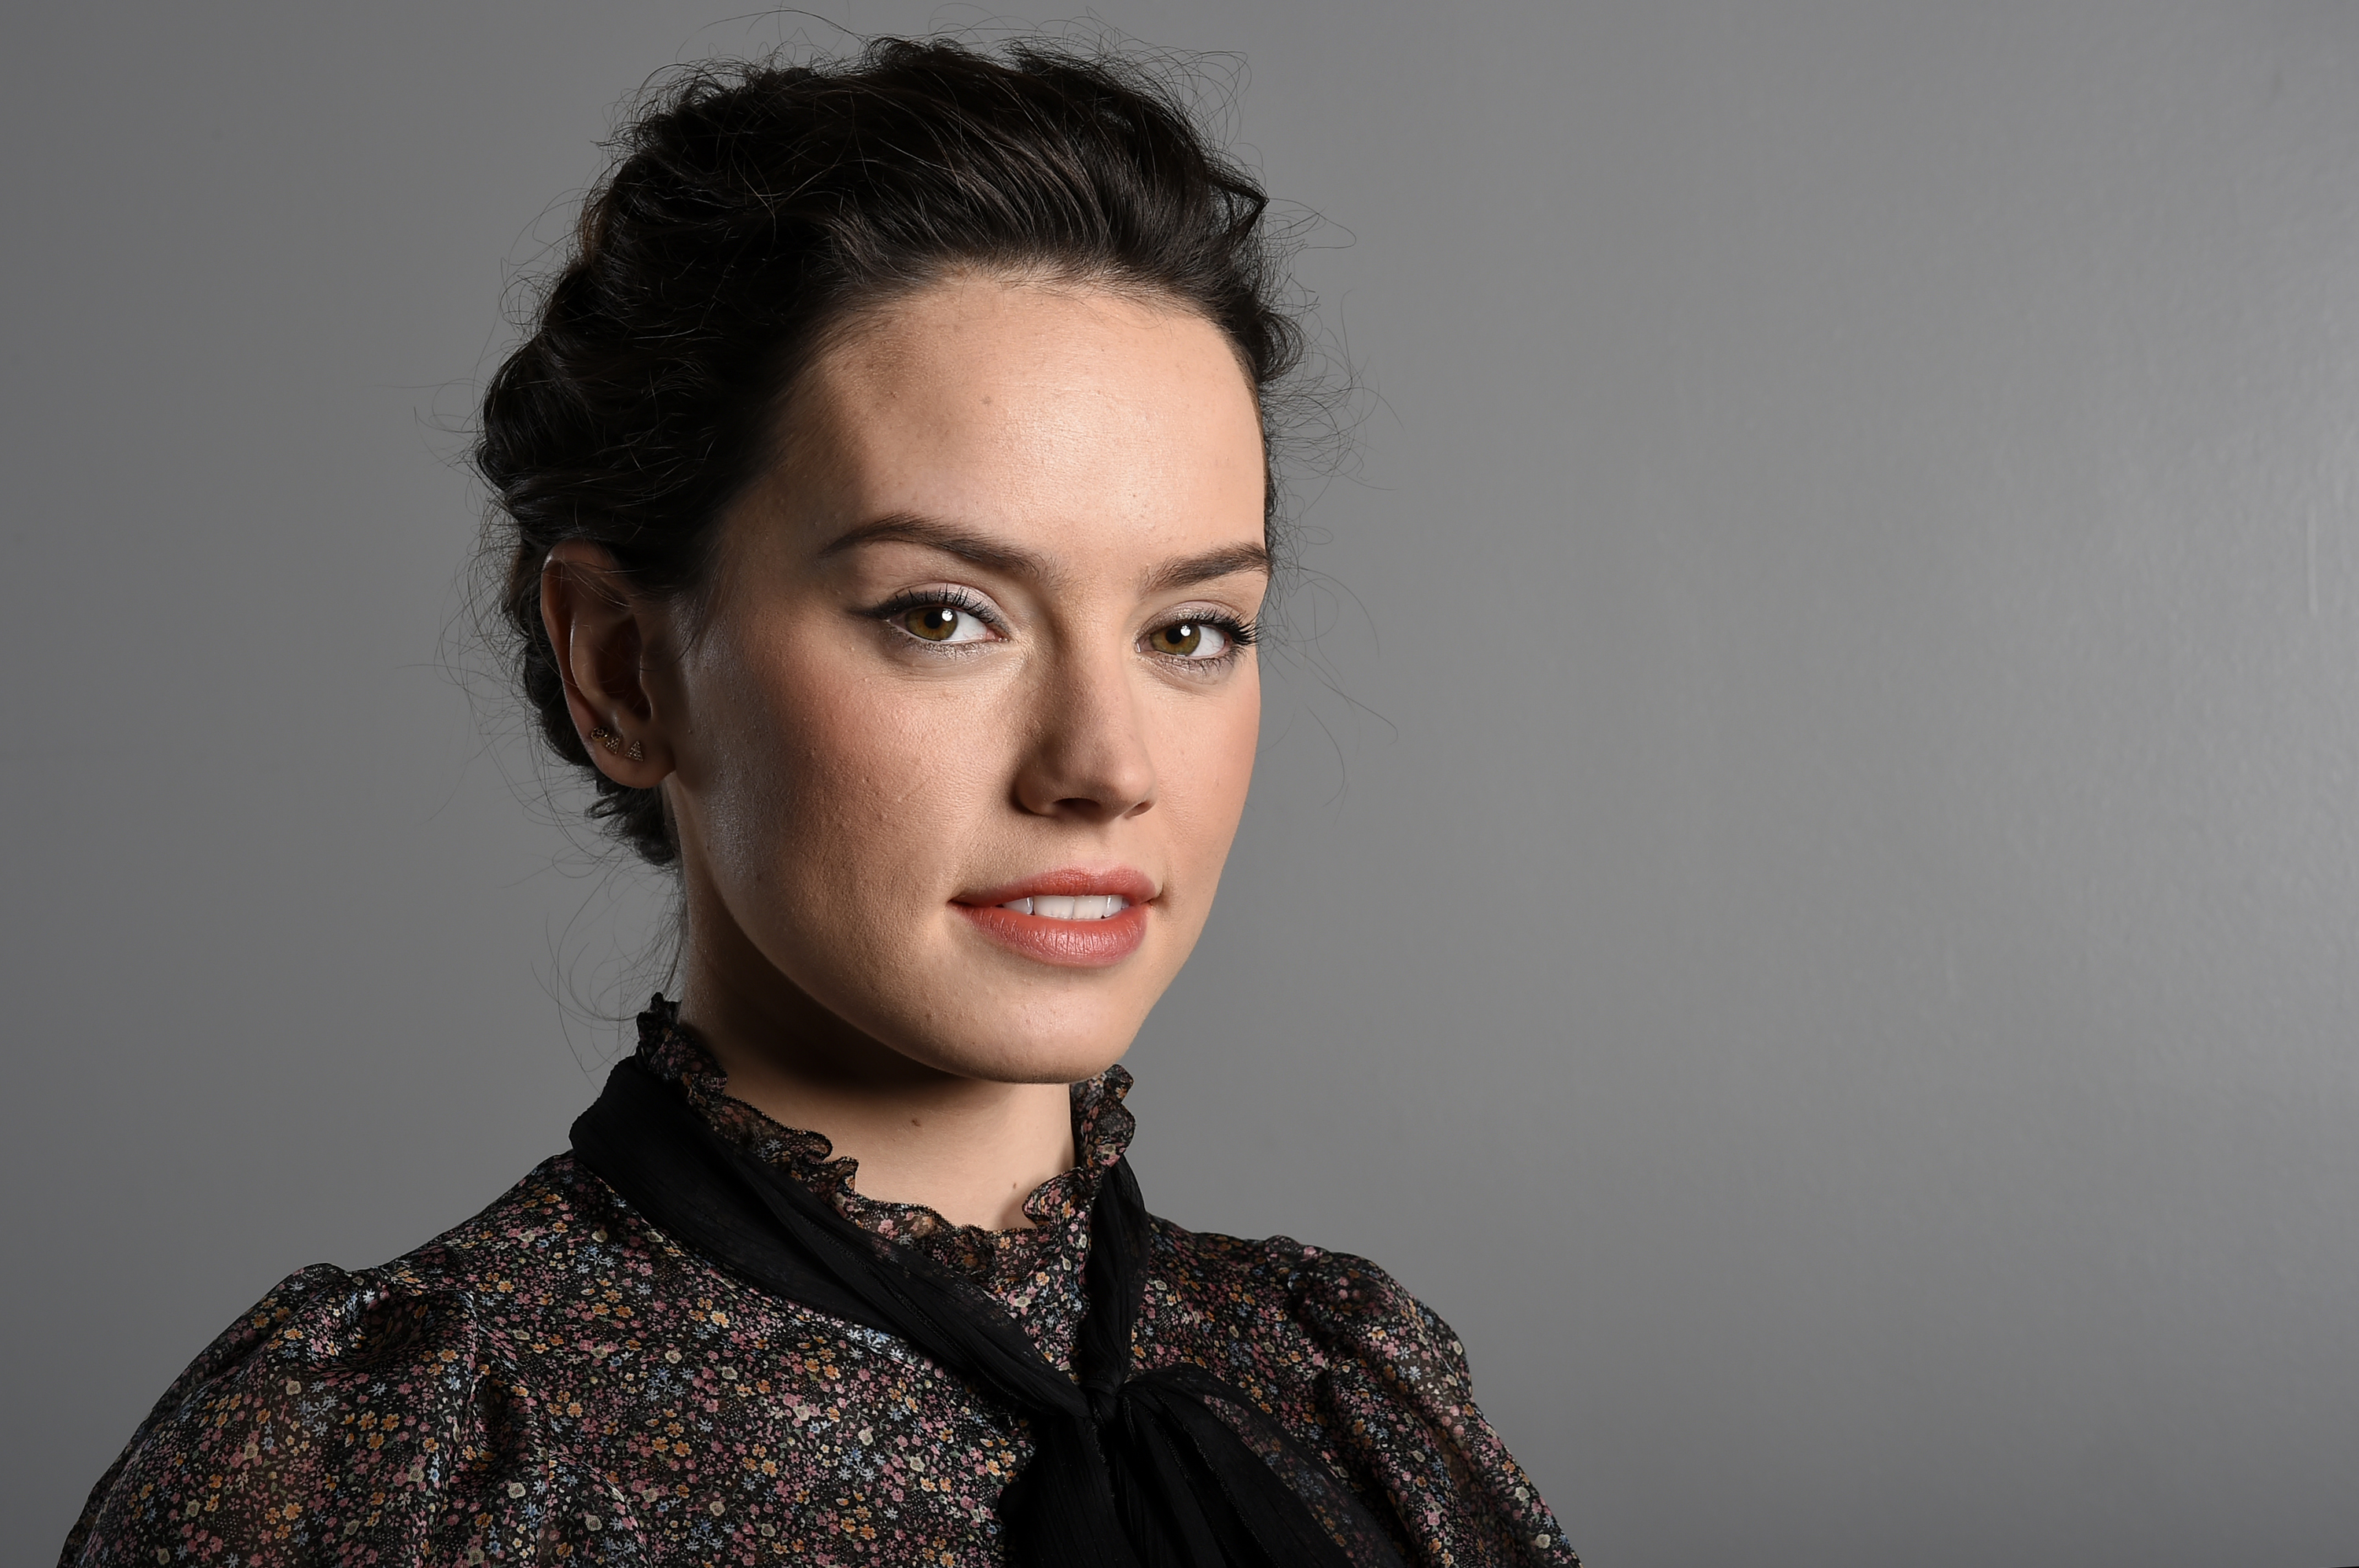 3000x1994 - Daisy Ridley Wallpapers 11